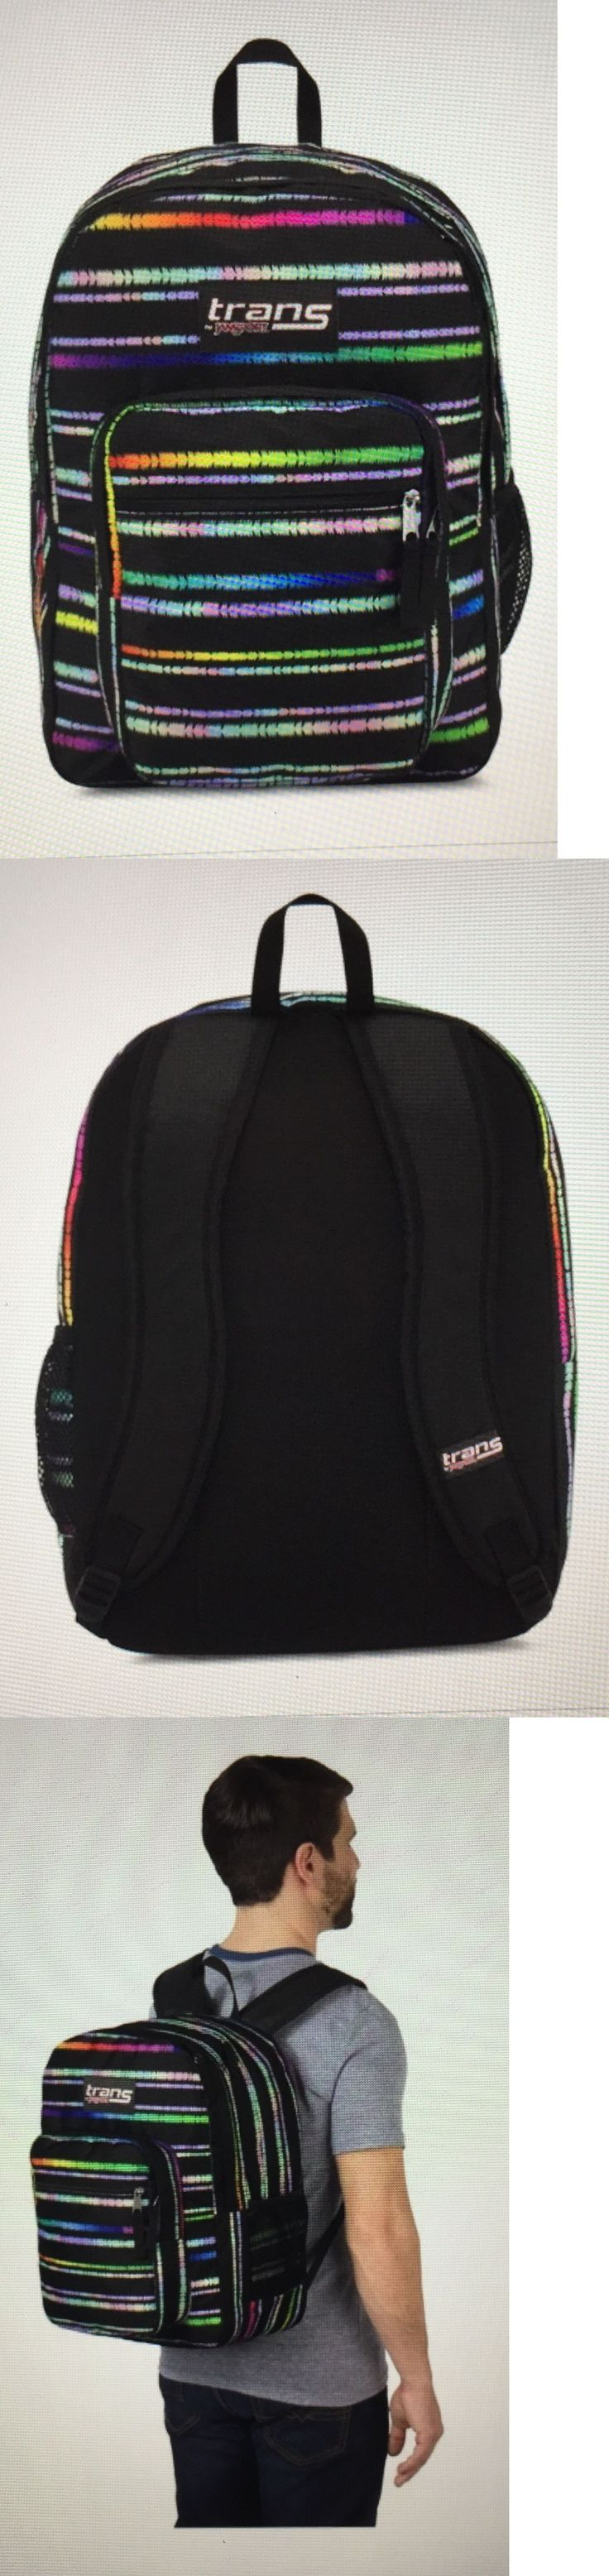 Pens and Pencils 102953: Back To School. Trans By Jansport® 17 Supermax Backpack - Live Wire -> BUY IT NOW ONLY: $45 on eBay!